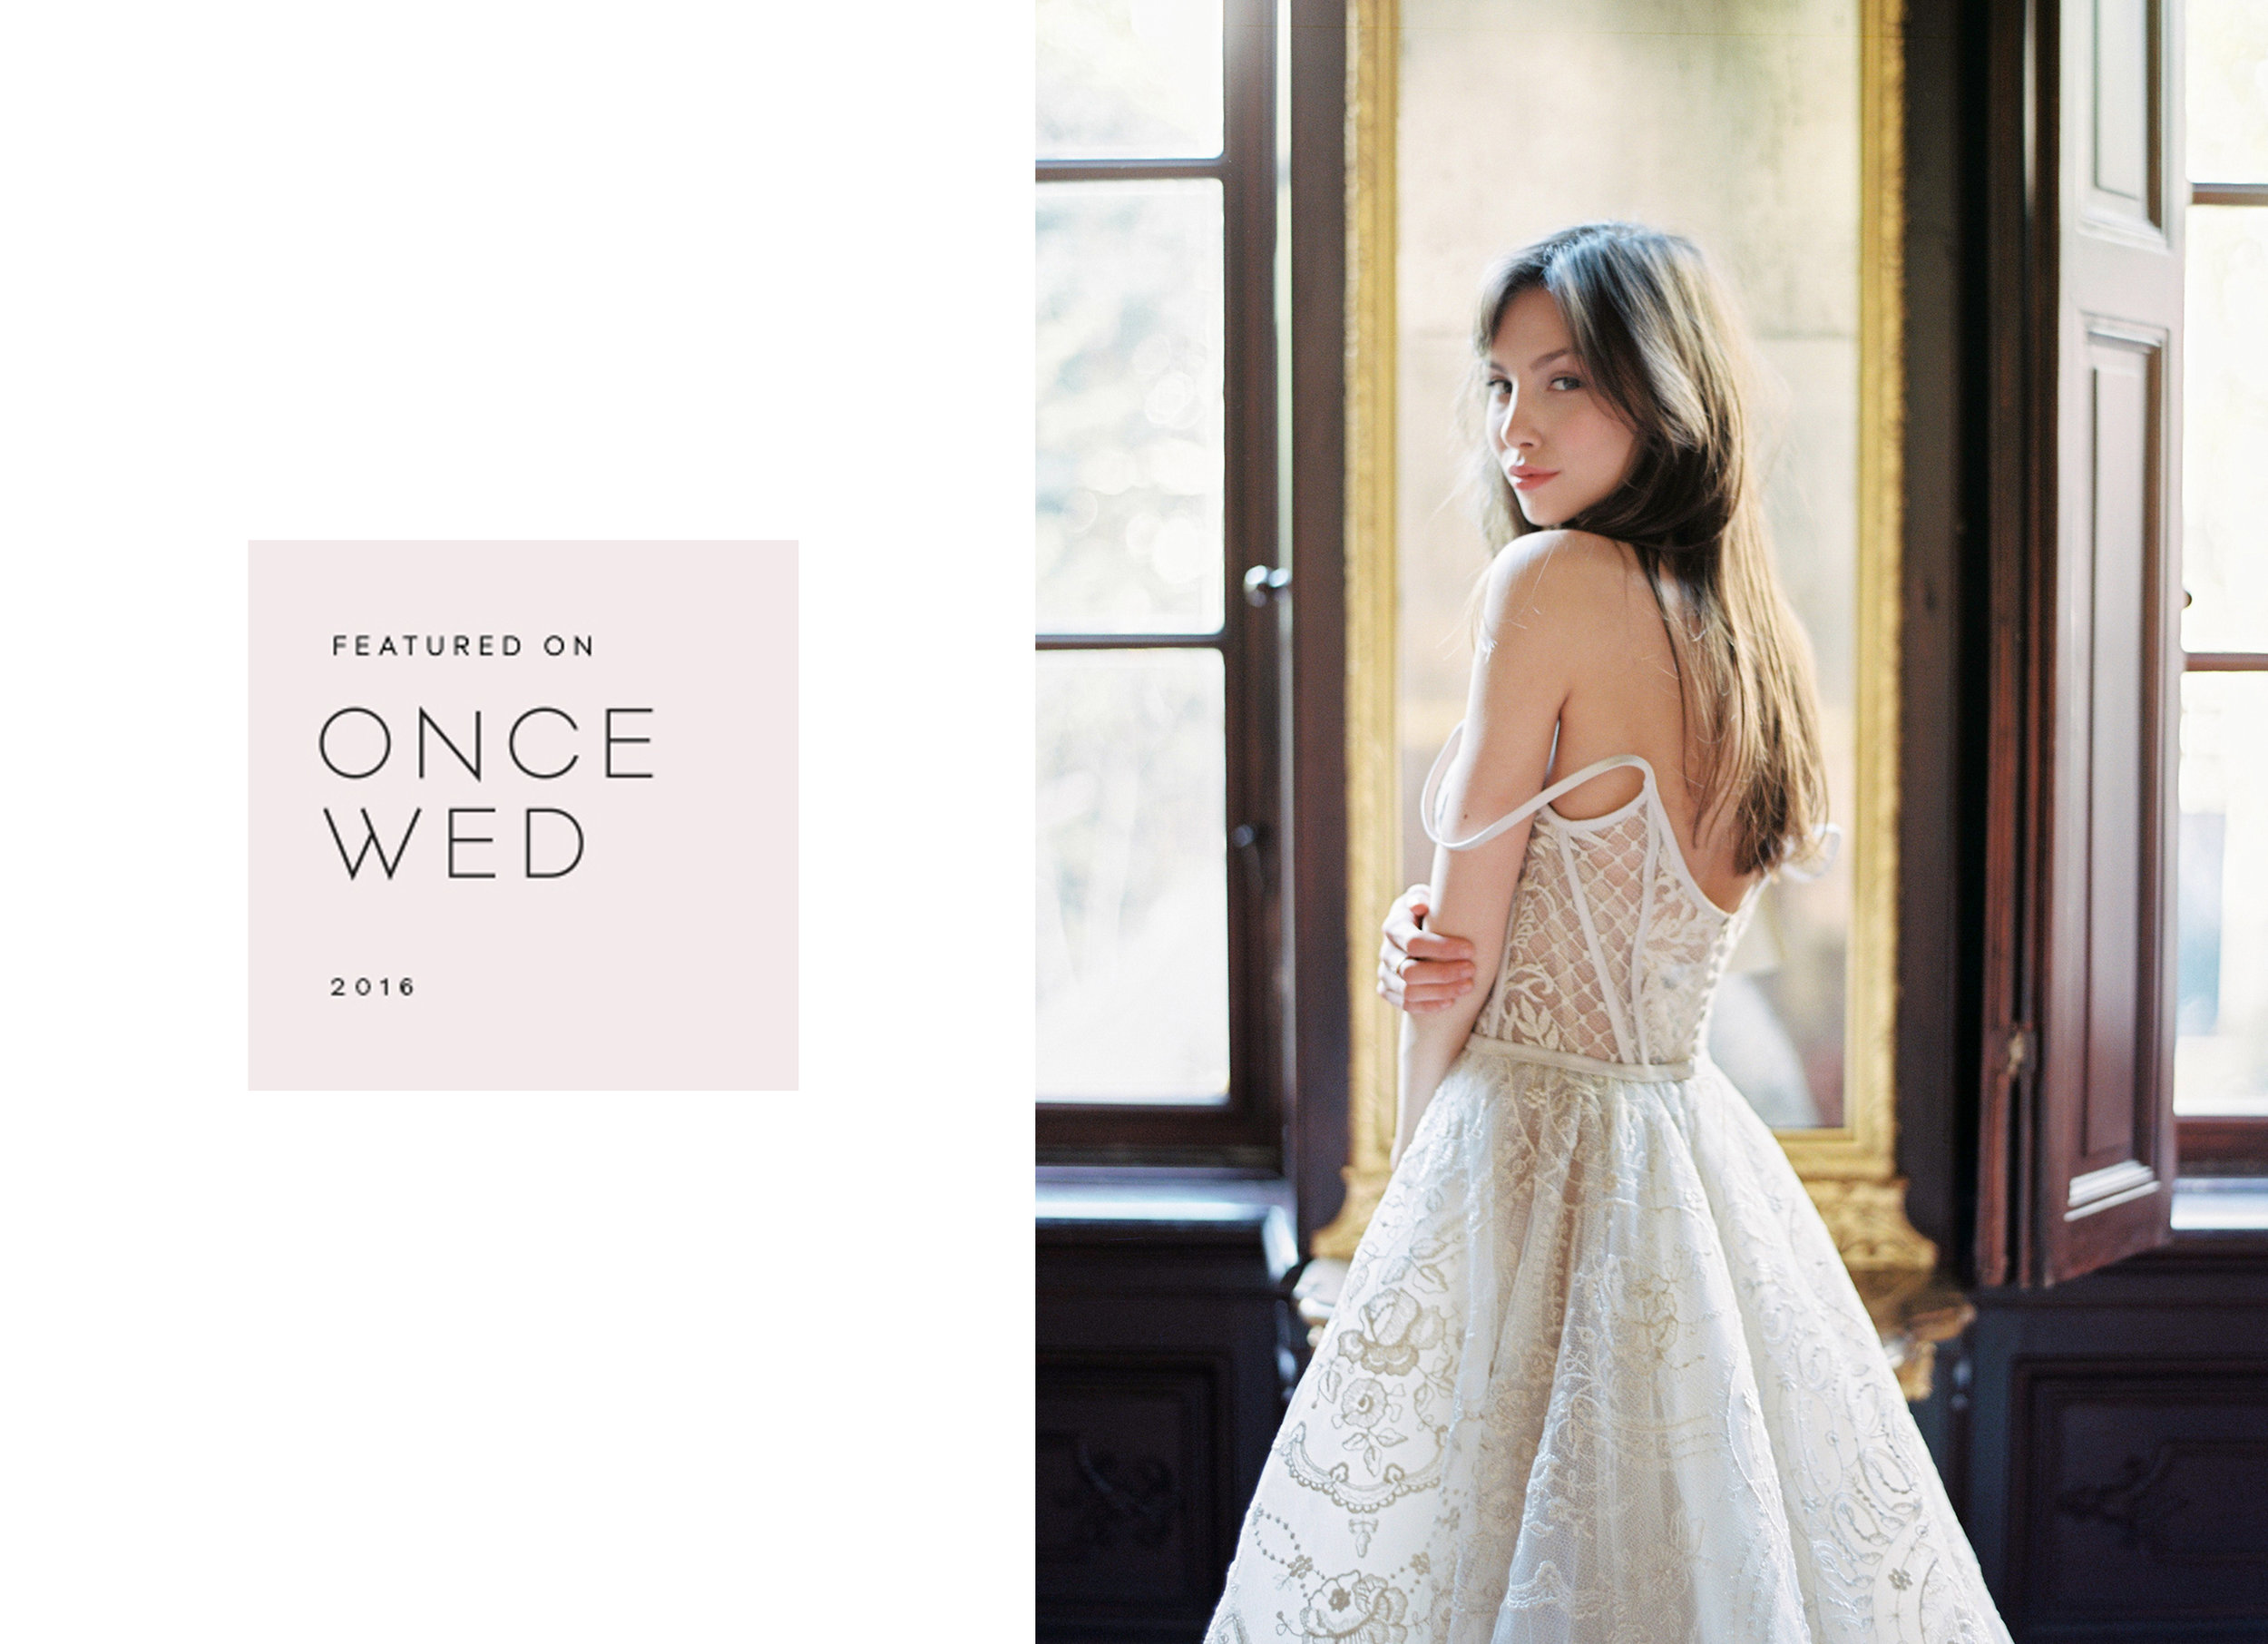 featured once wed by nastia vesna.jpg